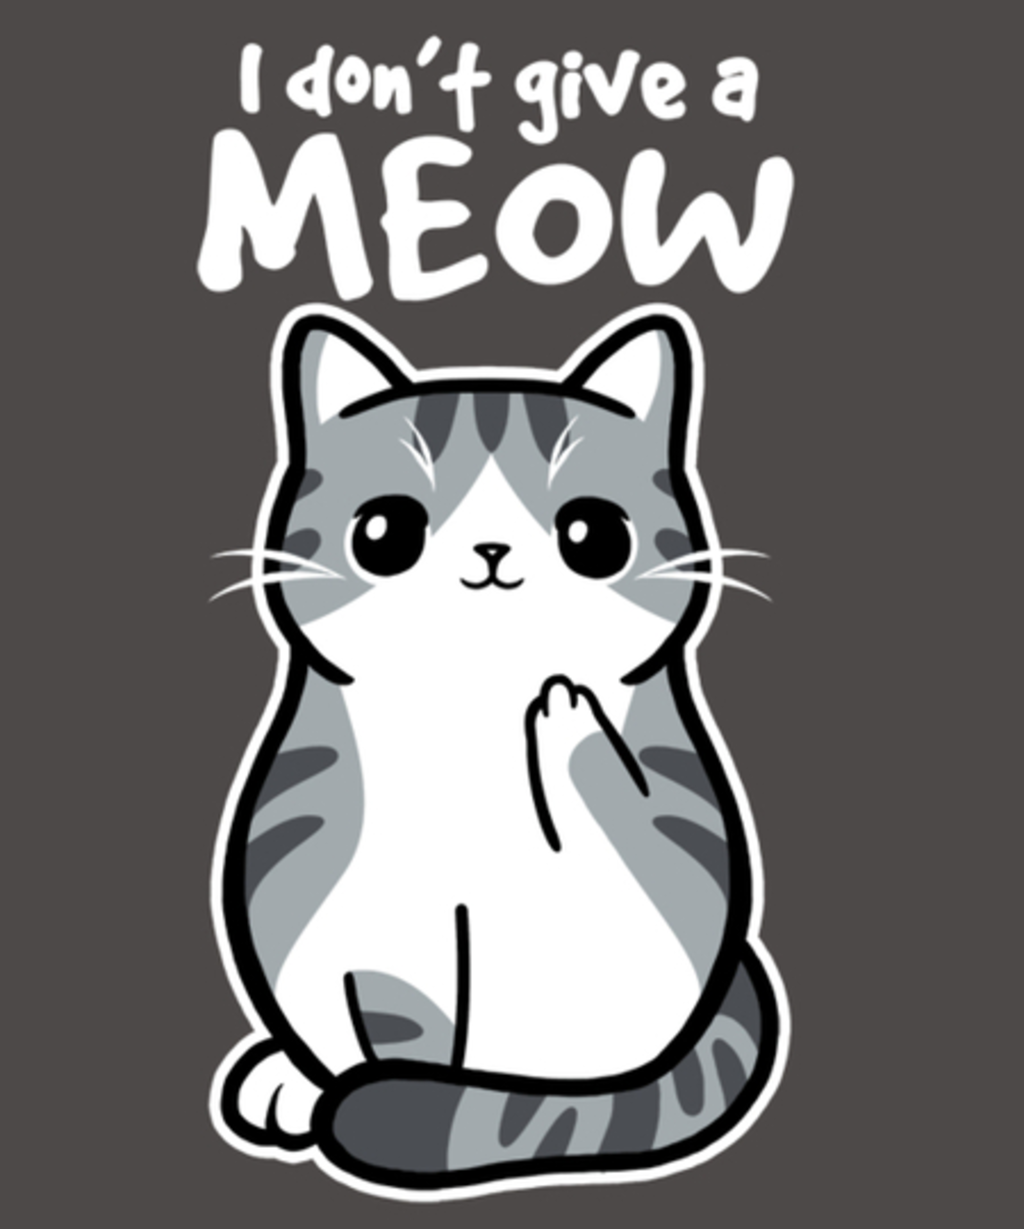 Qwertee: Don't give a MEOW